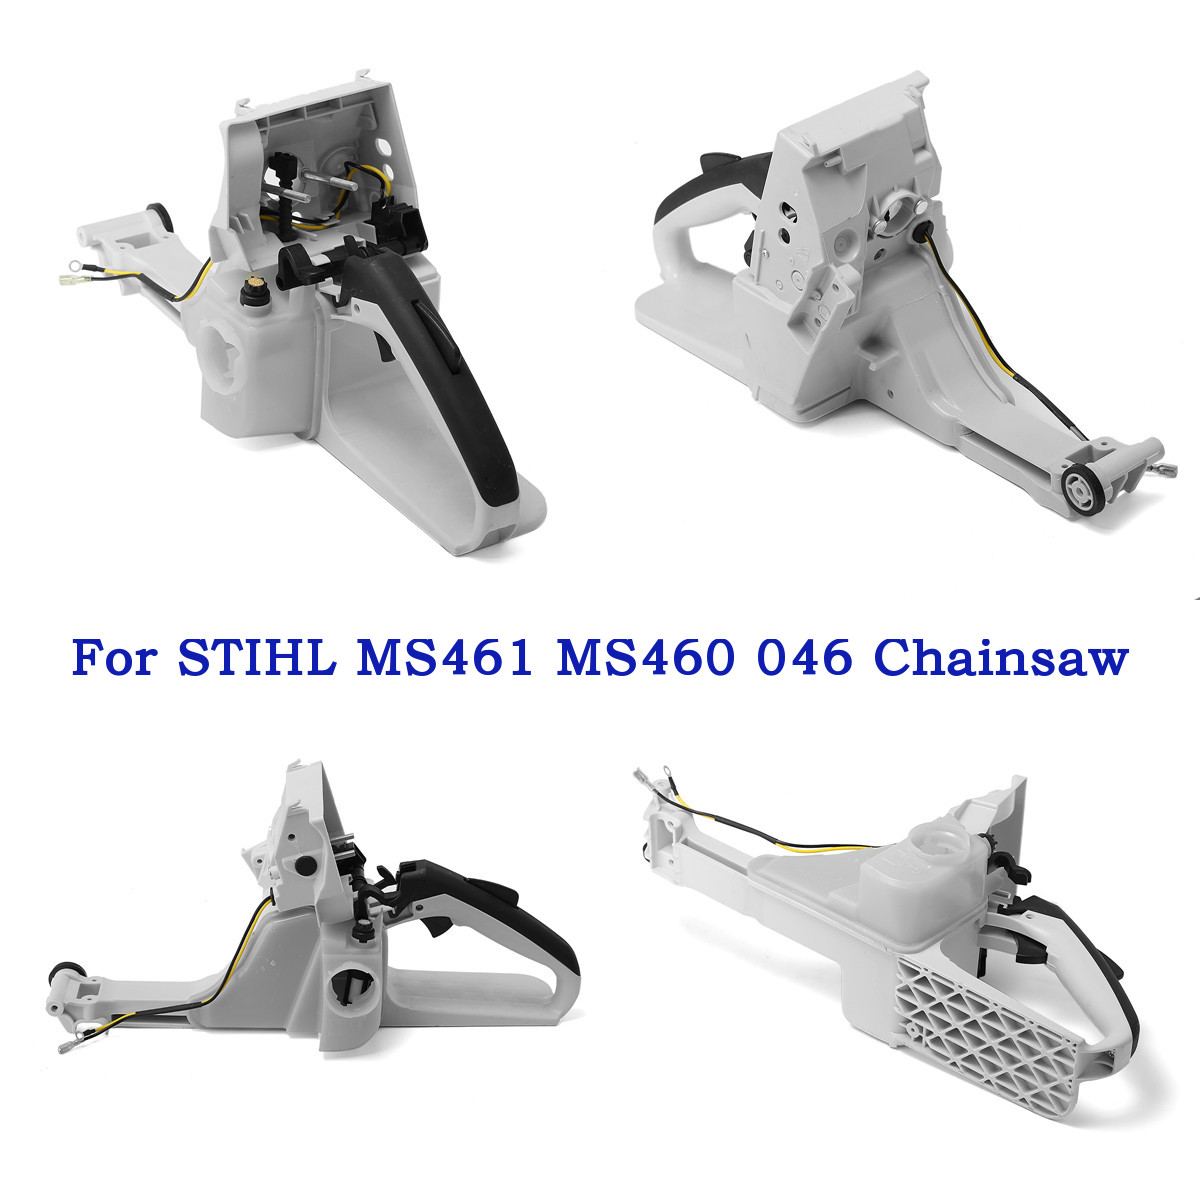 US $27 99 |Gas Fuel Tank Housing Rear Handle Assy  for STIHL MS461 MS460  046 Chainsaw-in Party Favors from Home & Garden on Aliexpress com | Alibaba